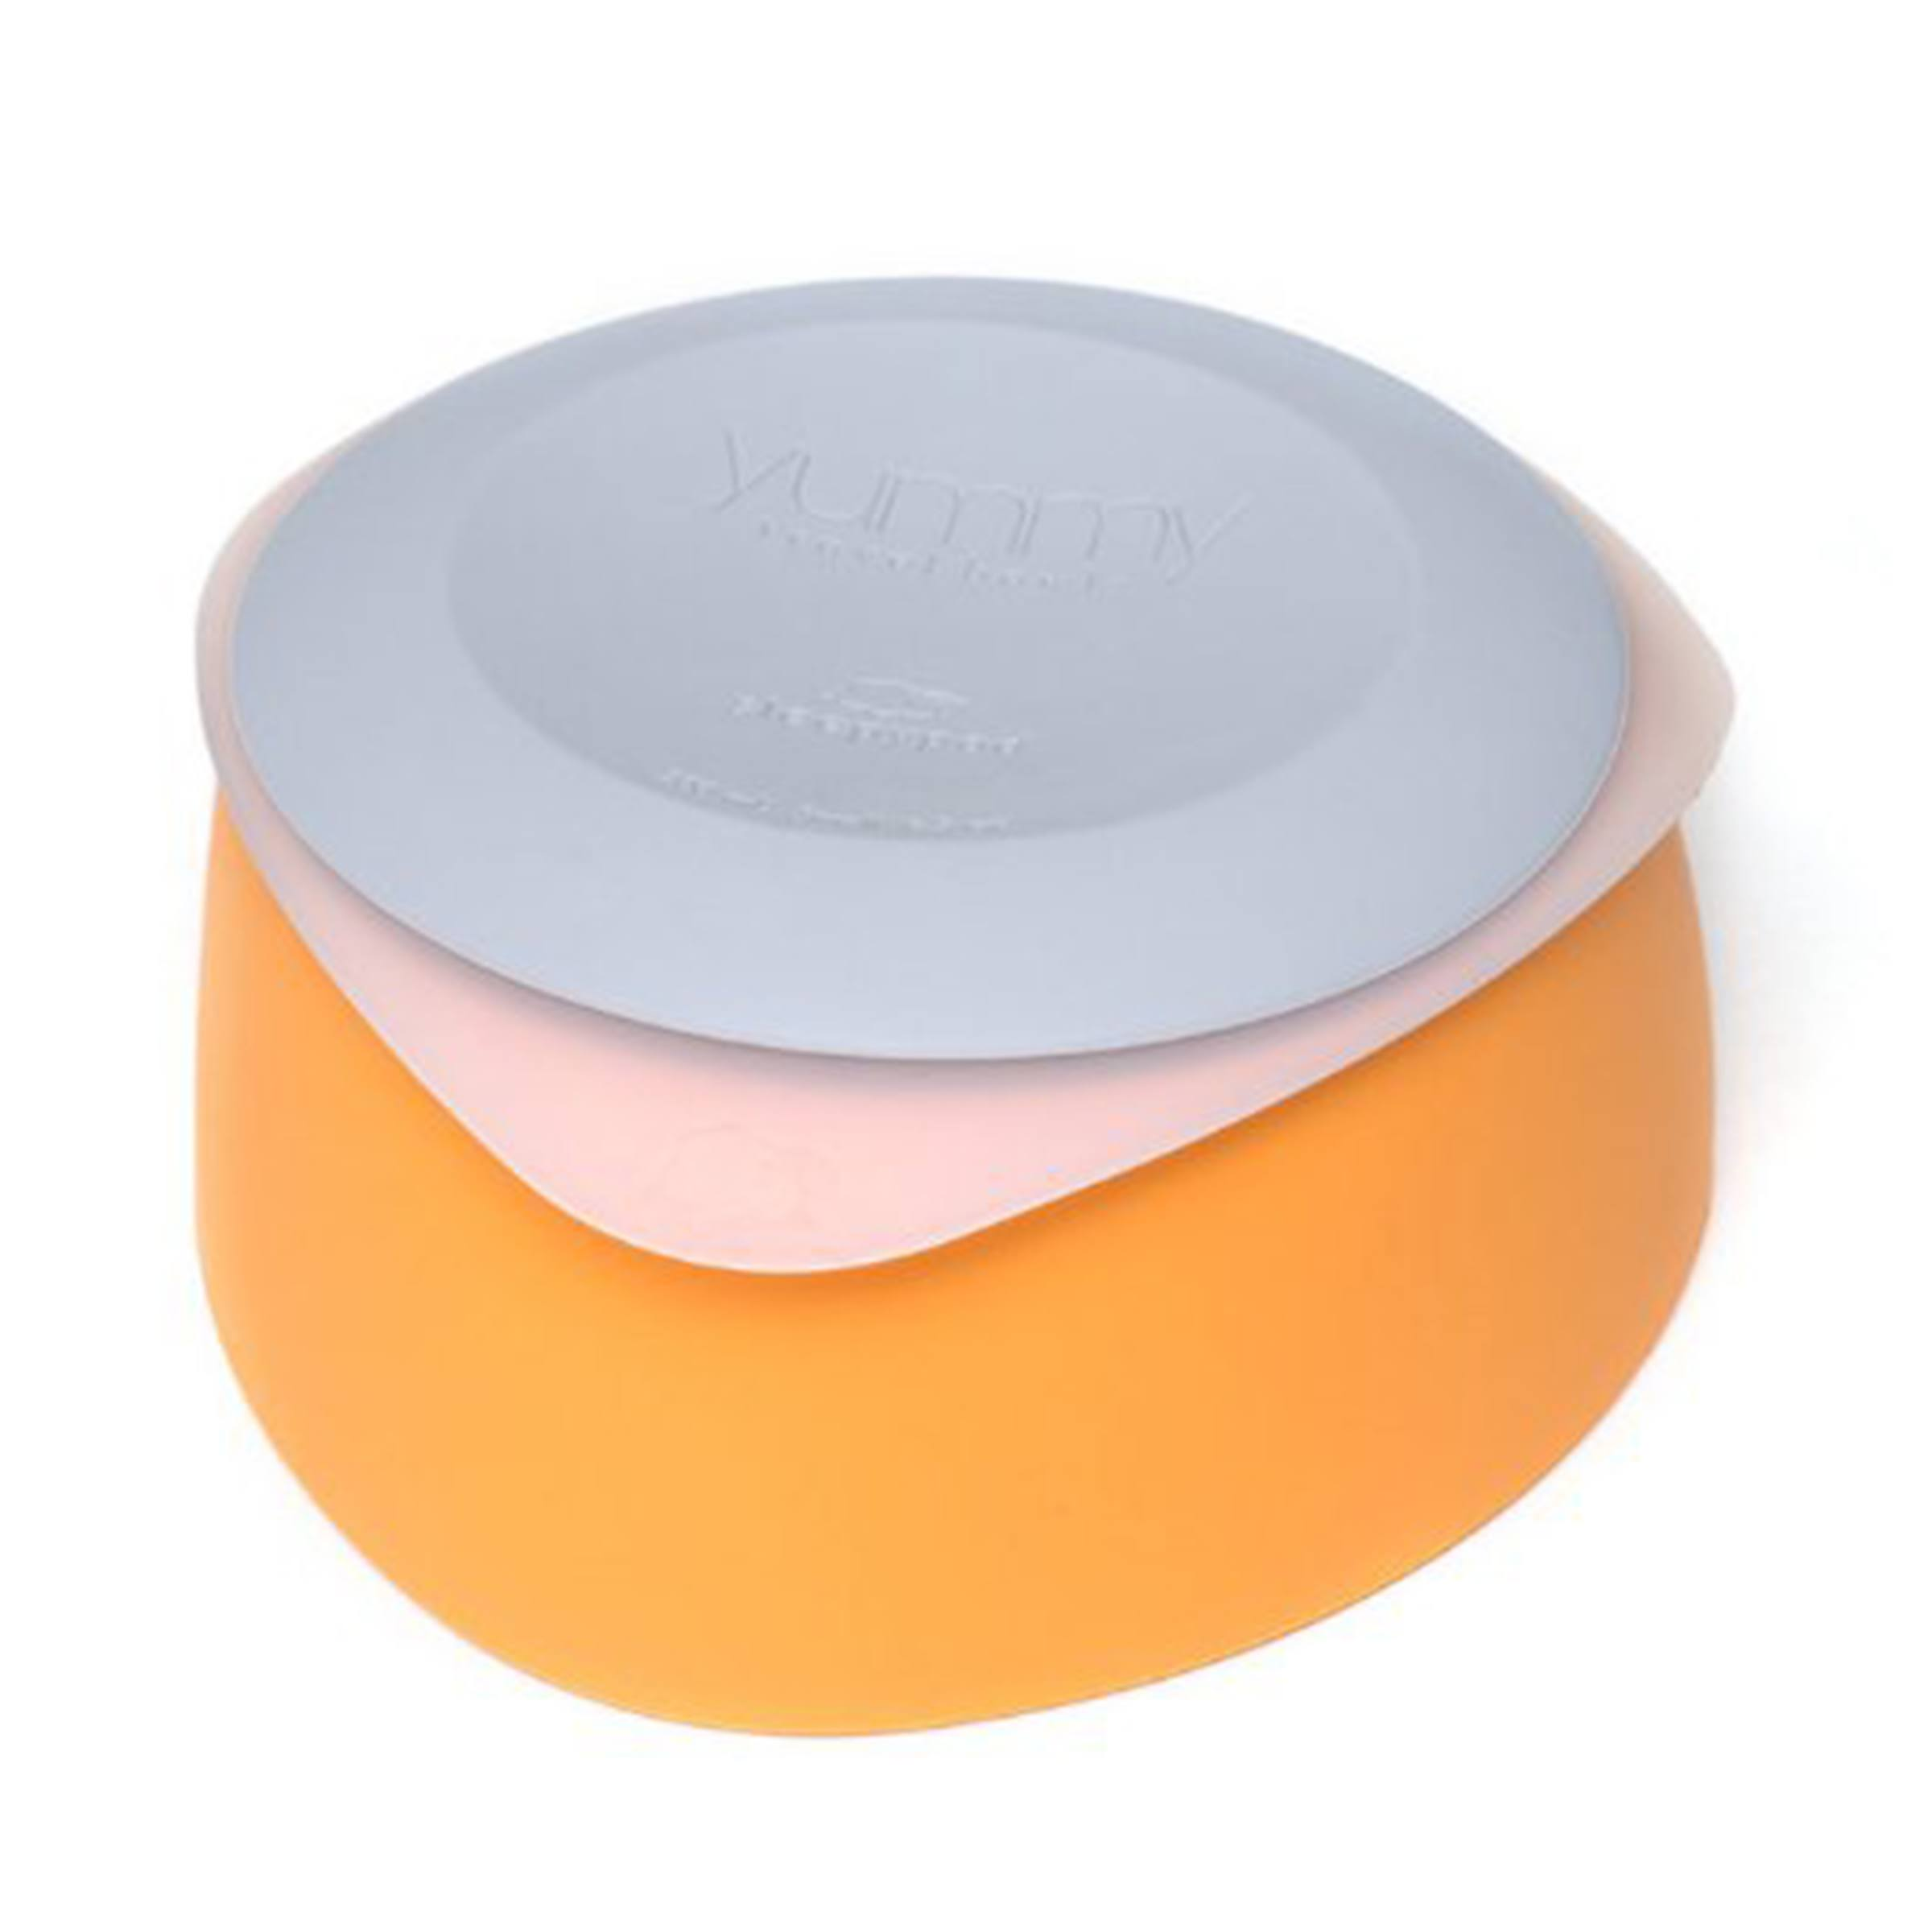 Sleepypod Yummy Bowl Set YB-MAN-S Mango Tango- Small